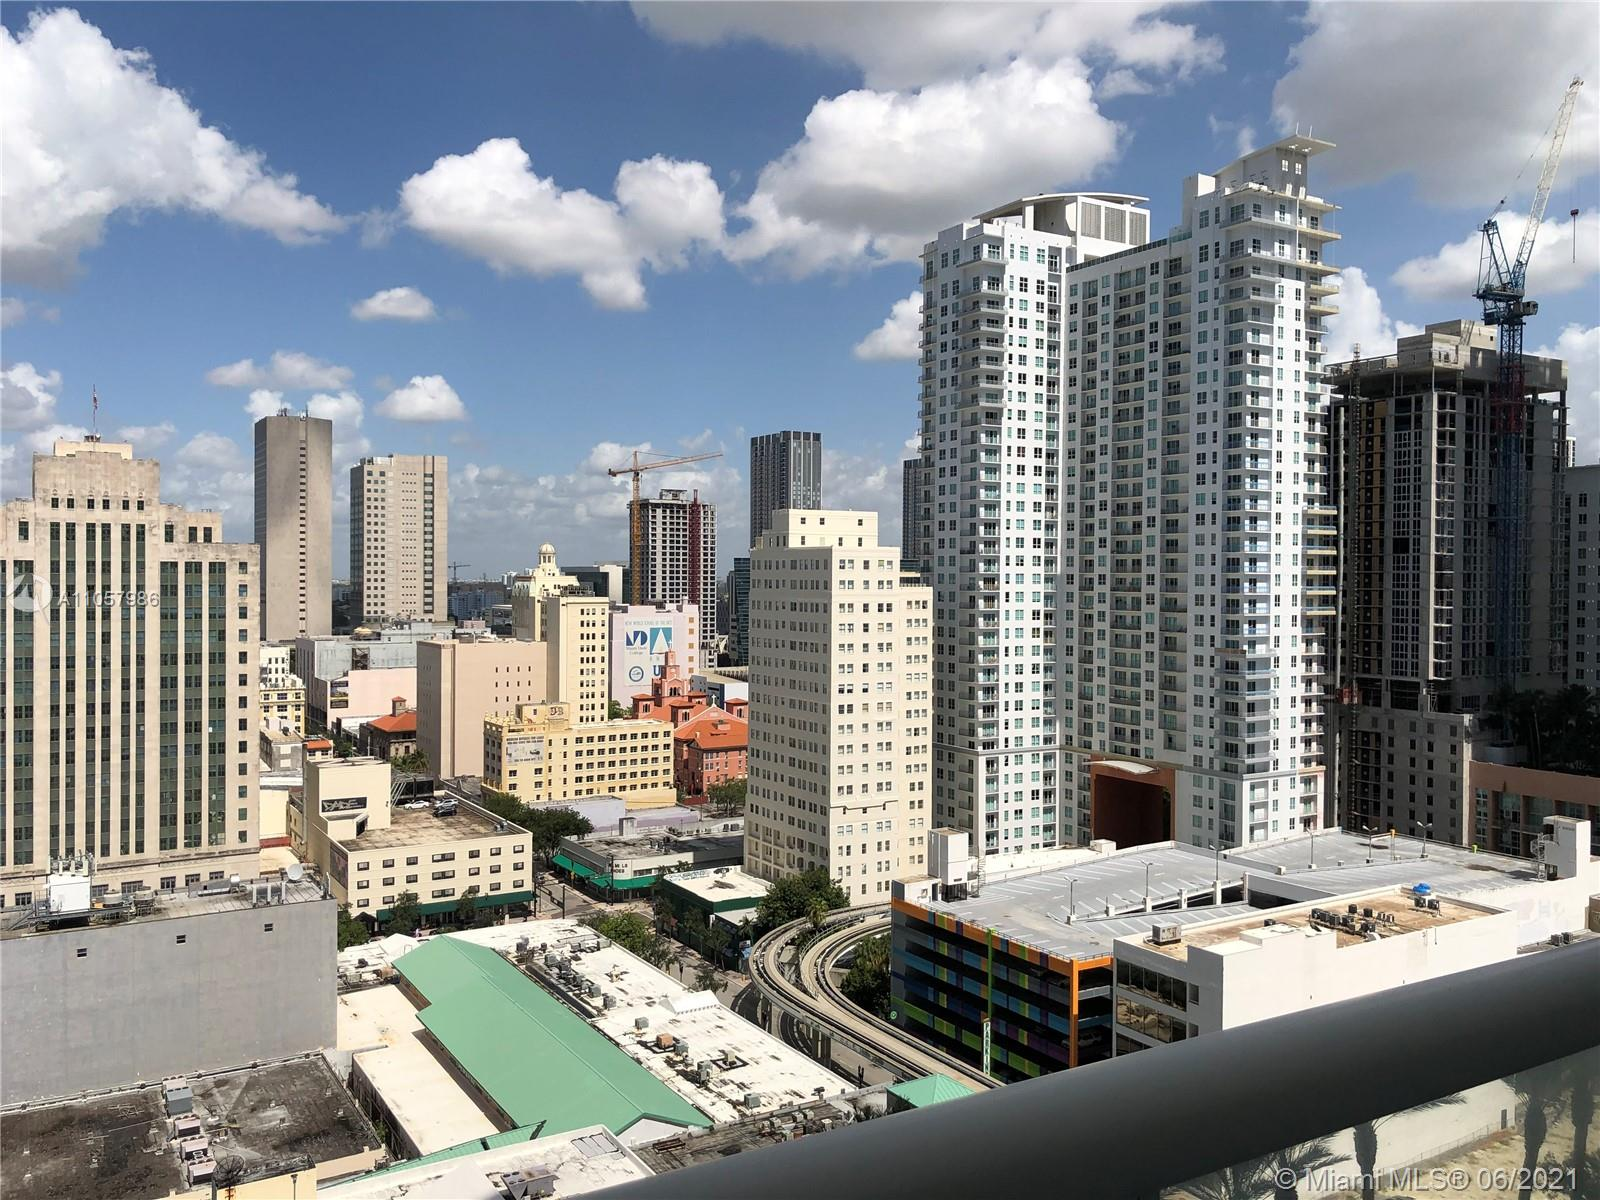 ATIFUL 2BED/2BATH CONDO FULLY FURNISHED RIGHT AT THE HEART OF BAYSIDE. BUILDING WITH MODERN ARCHITECTUTE FINISH, AMENITIES INCLUDE; POOL, GYM, YOGA ROOM AND MORE. DOWNTOWN VIEWS FROM THE BALCONY. ENTERTAINMENT, RESTAURANTS THE BAY WALKING DISTANCE